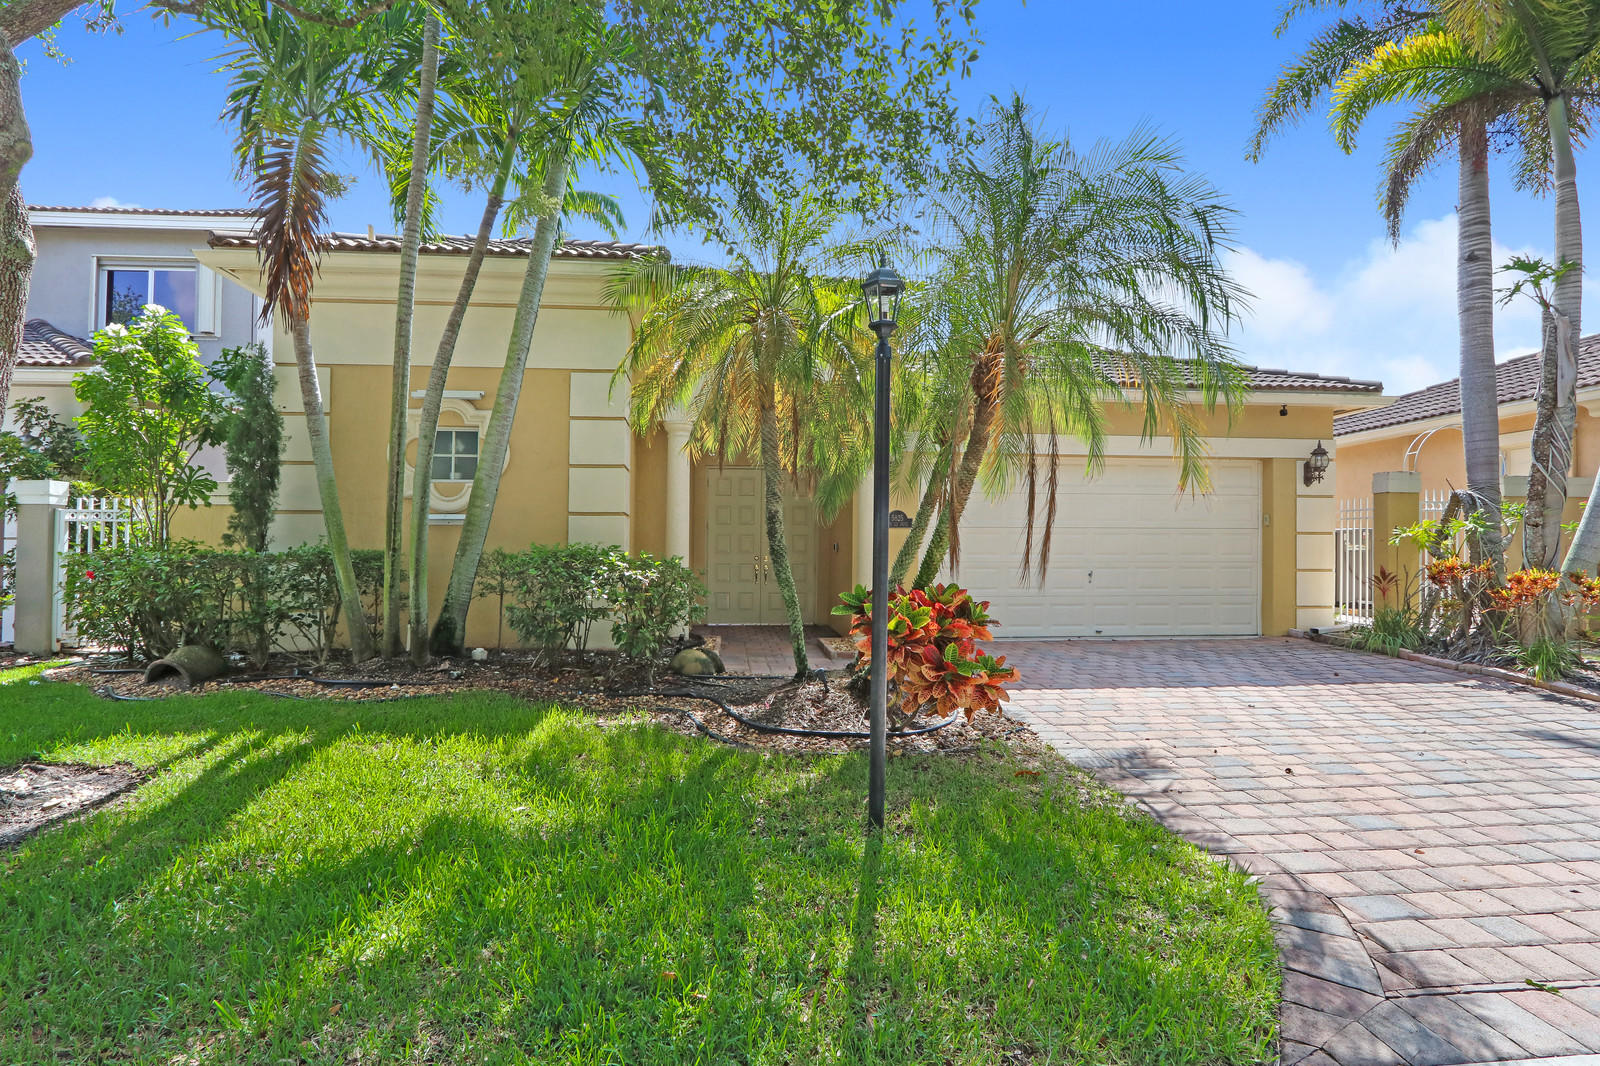 Heron Bay, 5825 NW 122, Coral Springs, Florida 33076